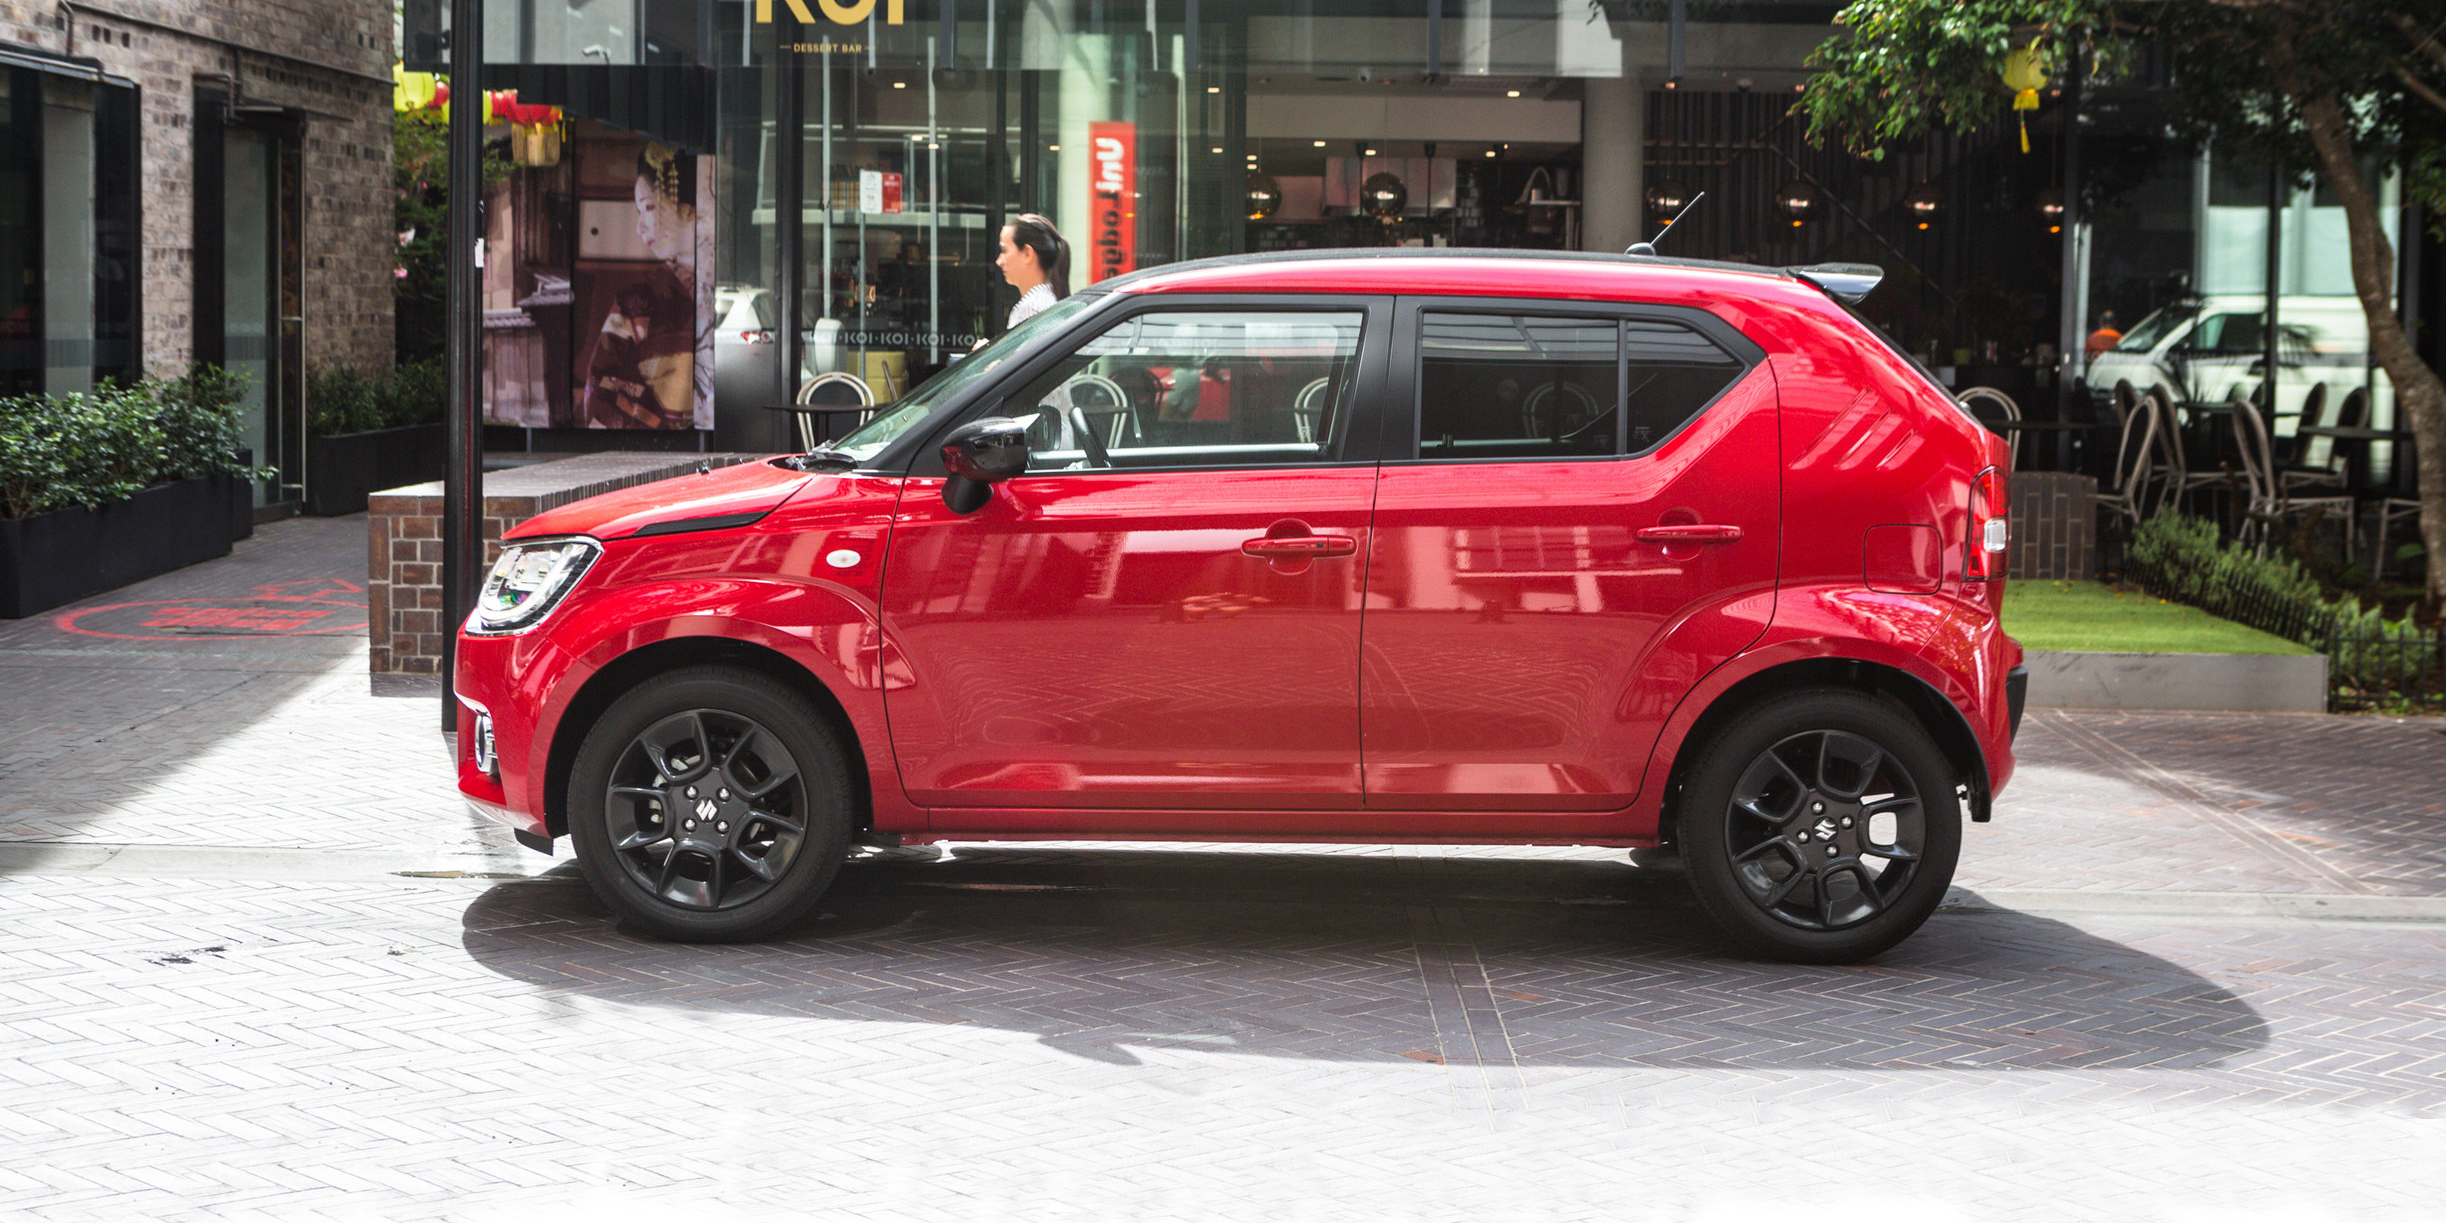 Mazda Cx 3 >> 2017 Suzuki Ignis GLX auto review: Long-term report four ...